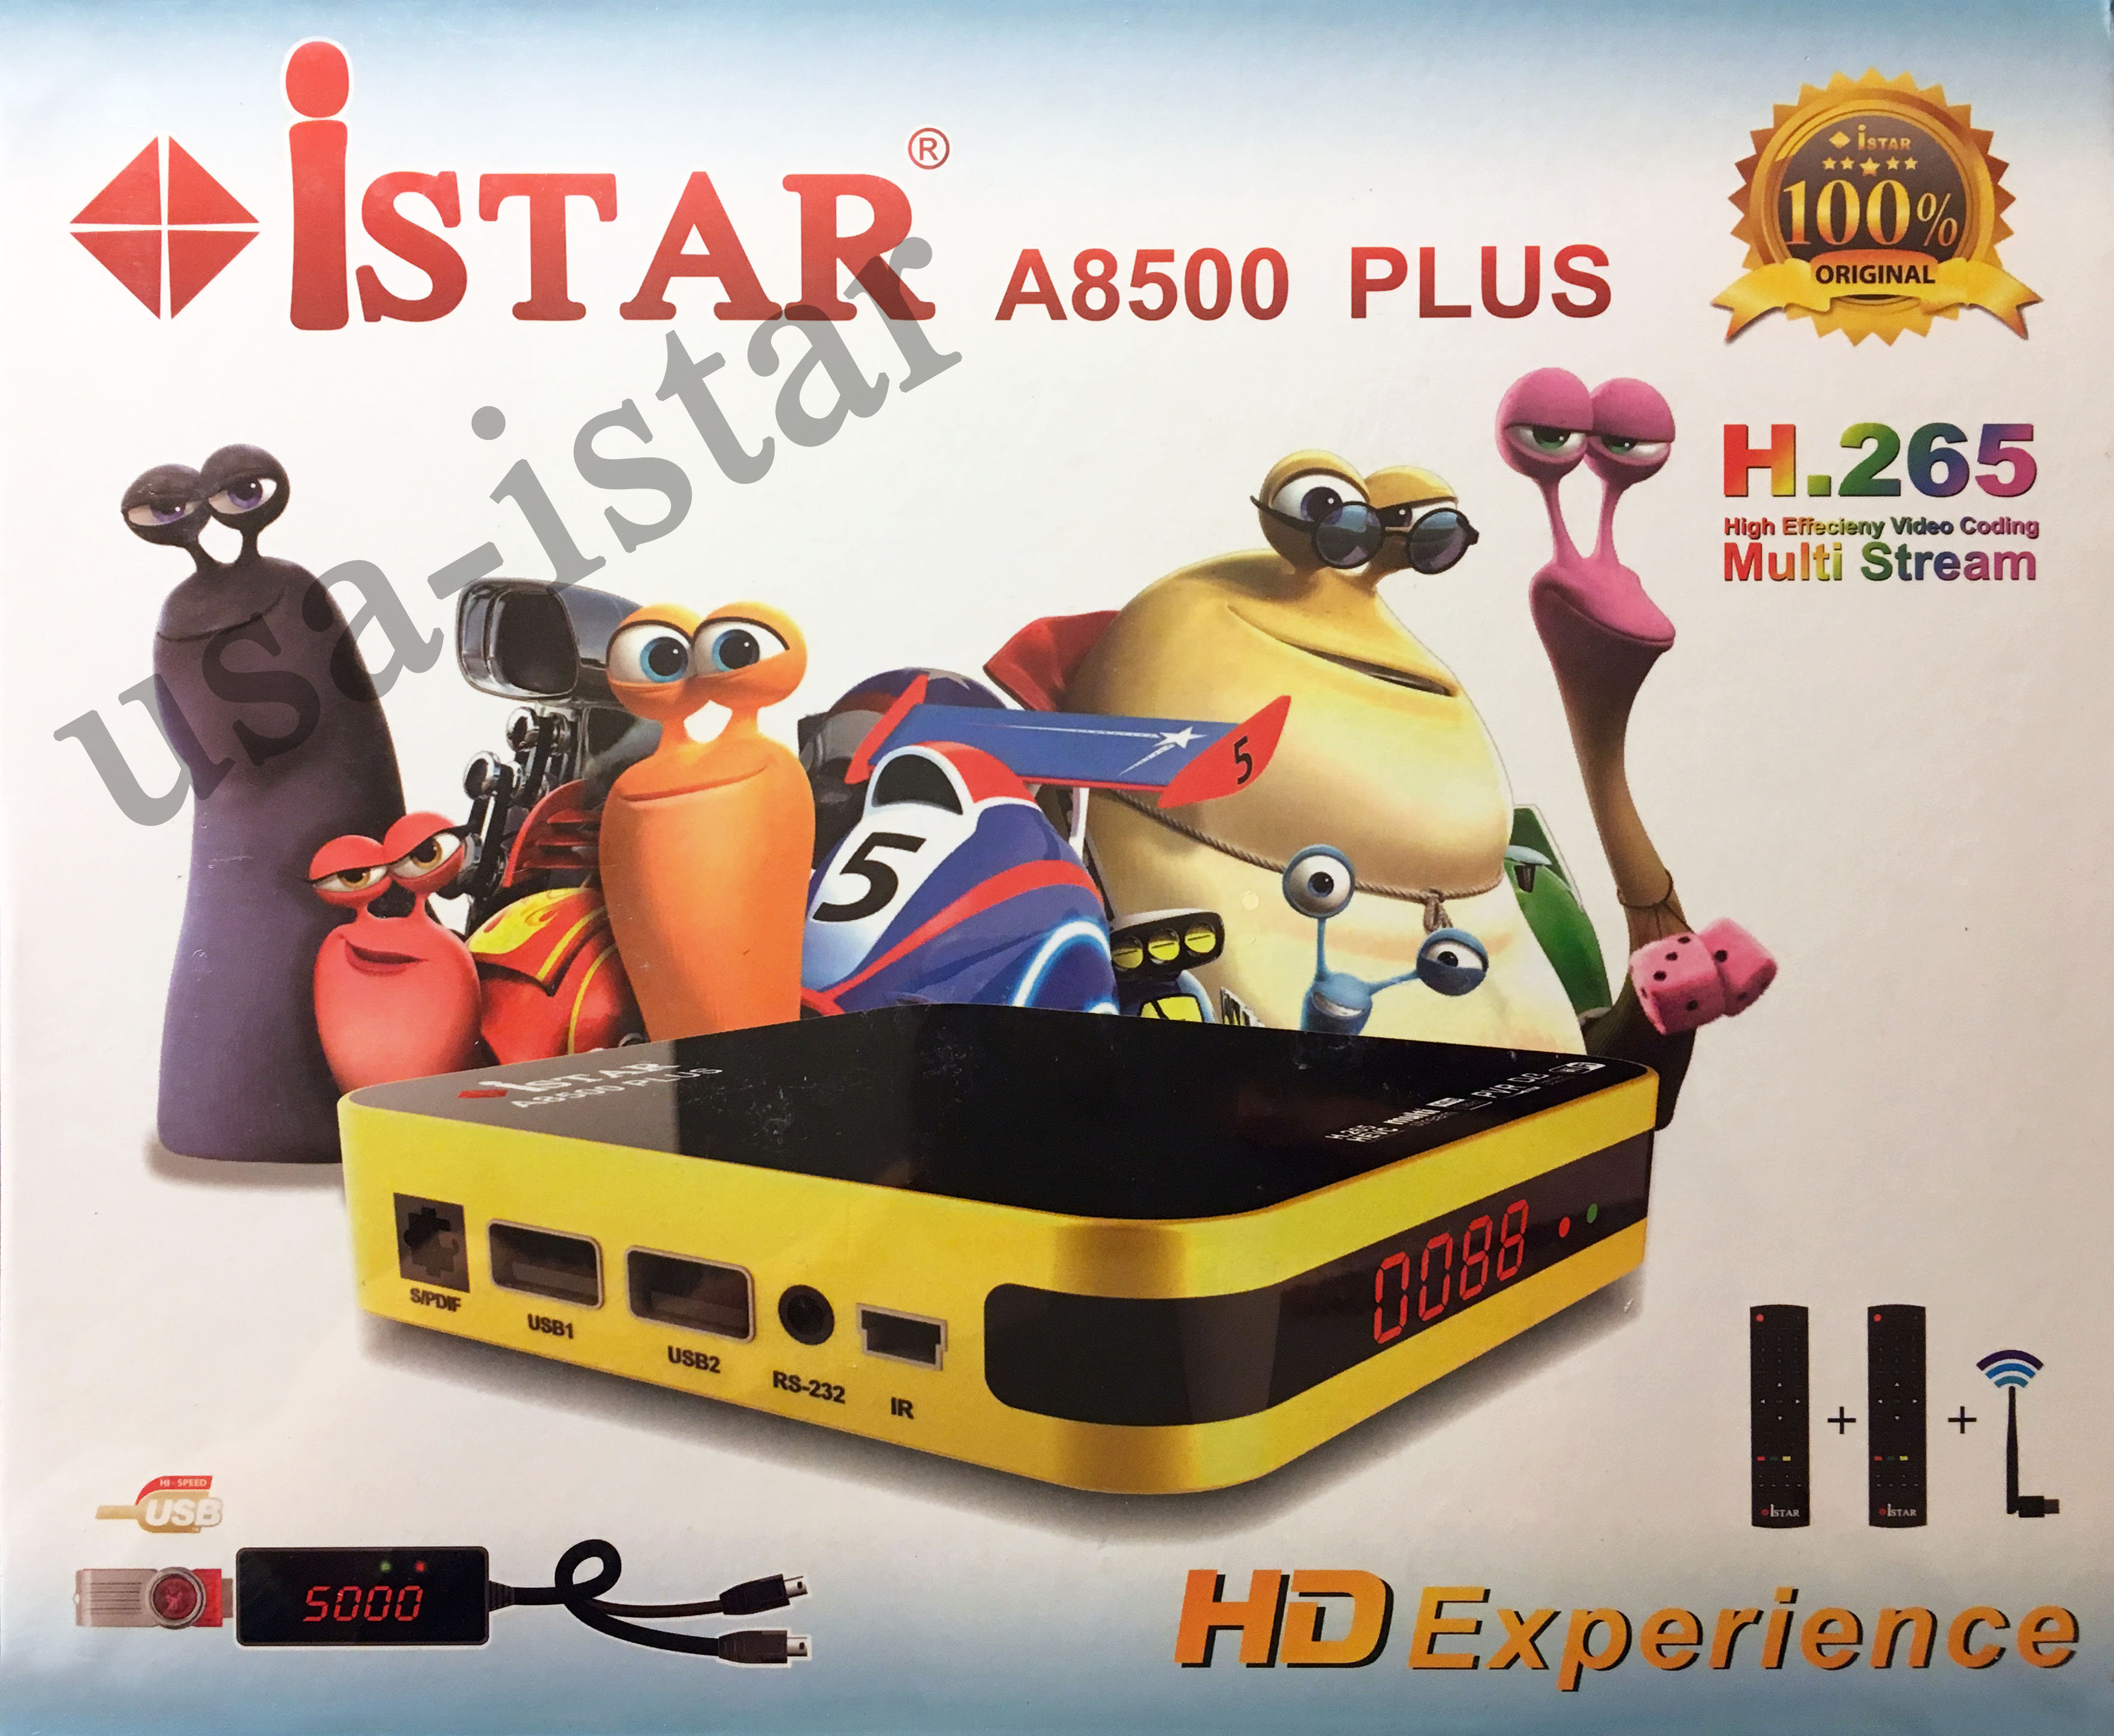 iStar A8500 Plus with 6 Months Free Online TV Subscription